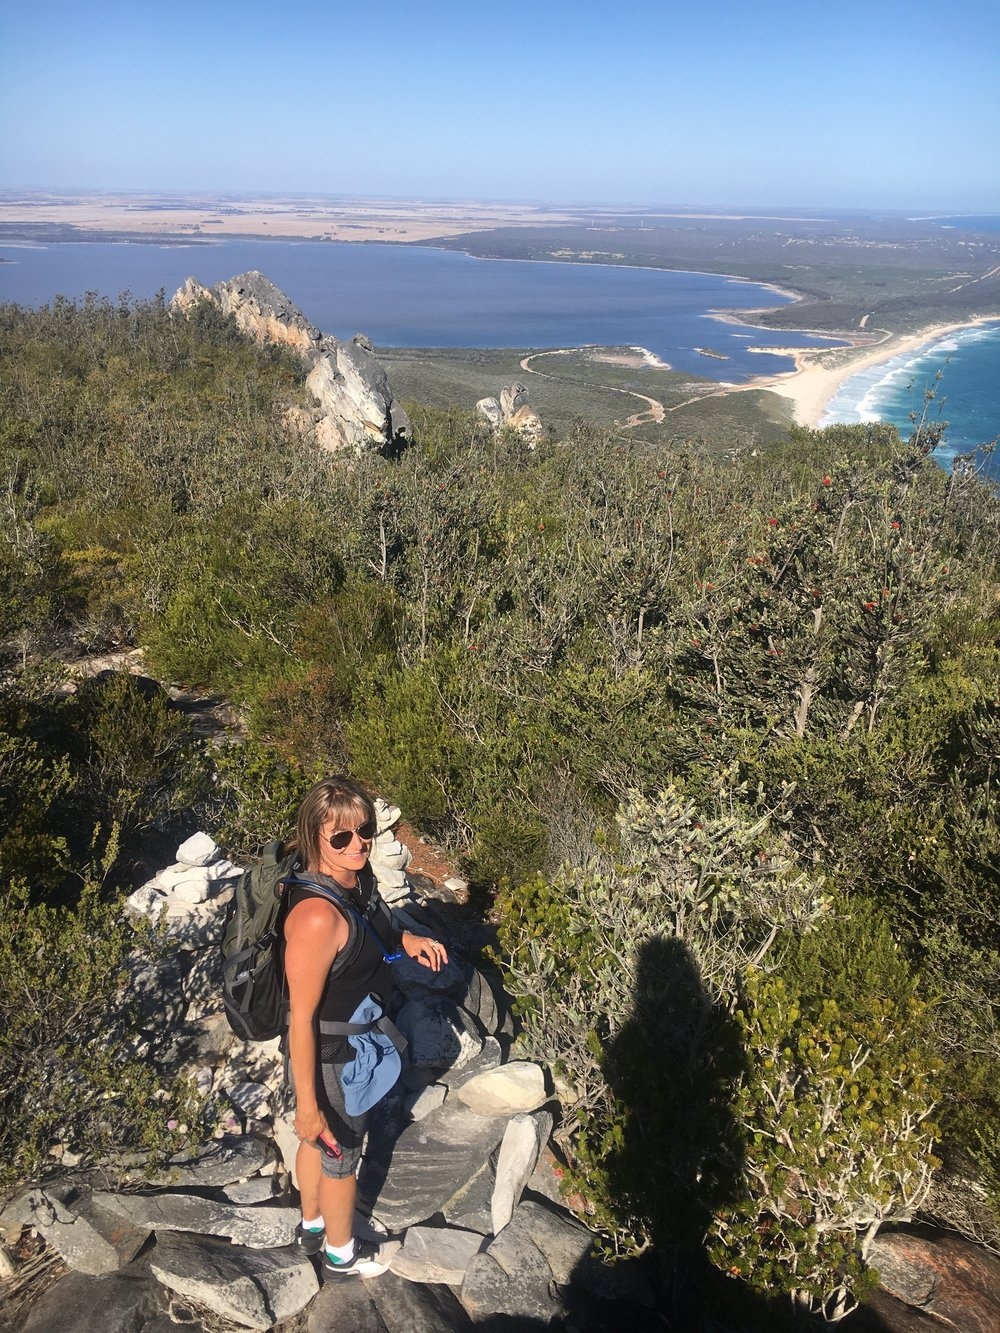 Sharon, who also became a friend after walking on the  Cape to Cape  with Edgewalkers, is enjoying the view east towards the Culham Inlet near Hopetoun.